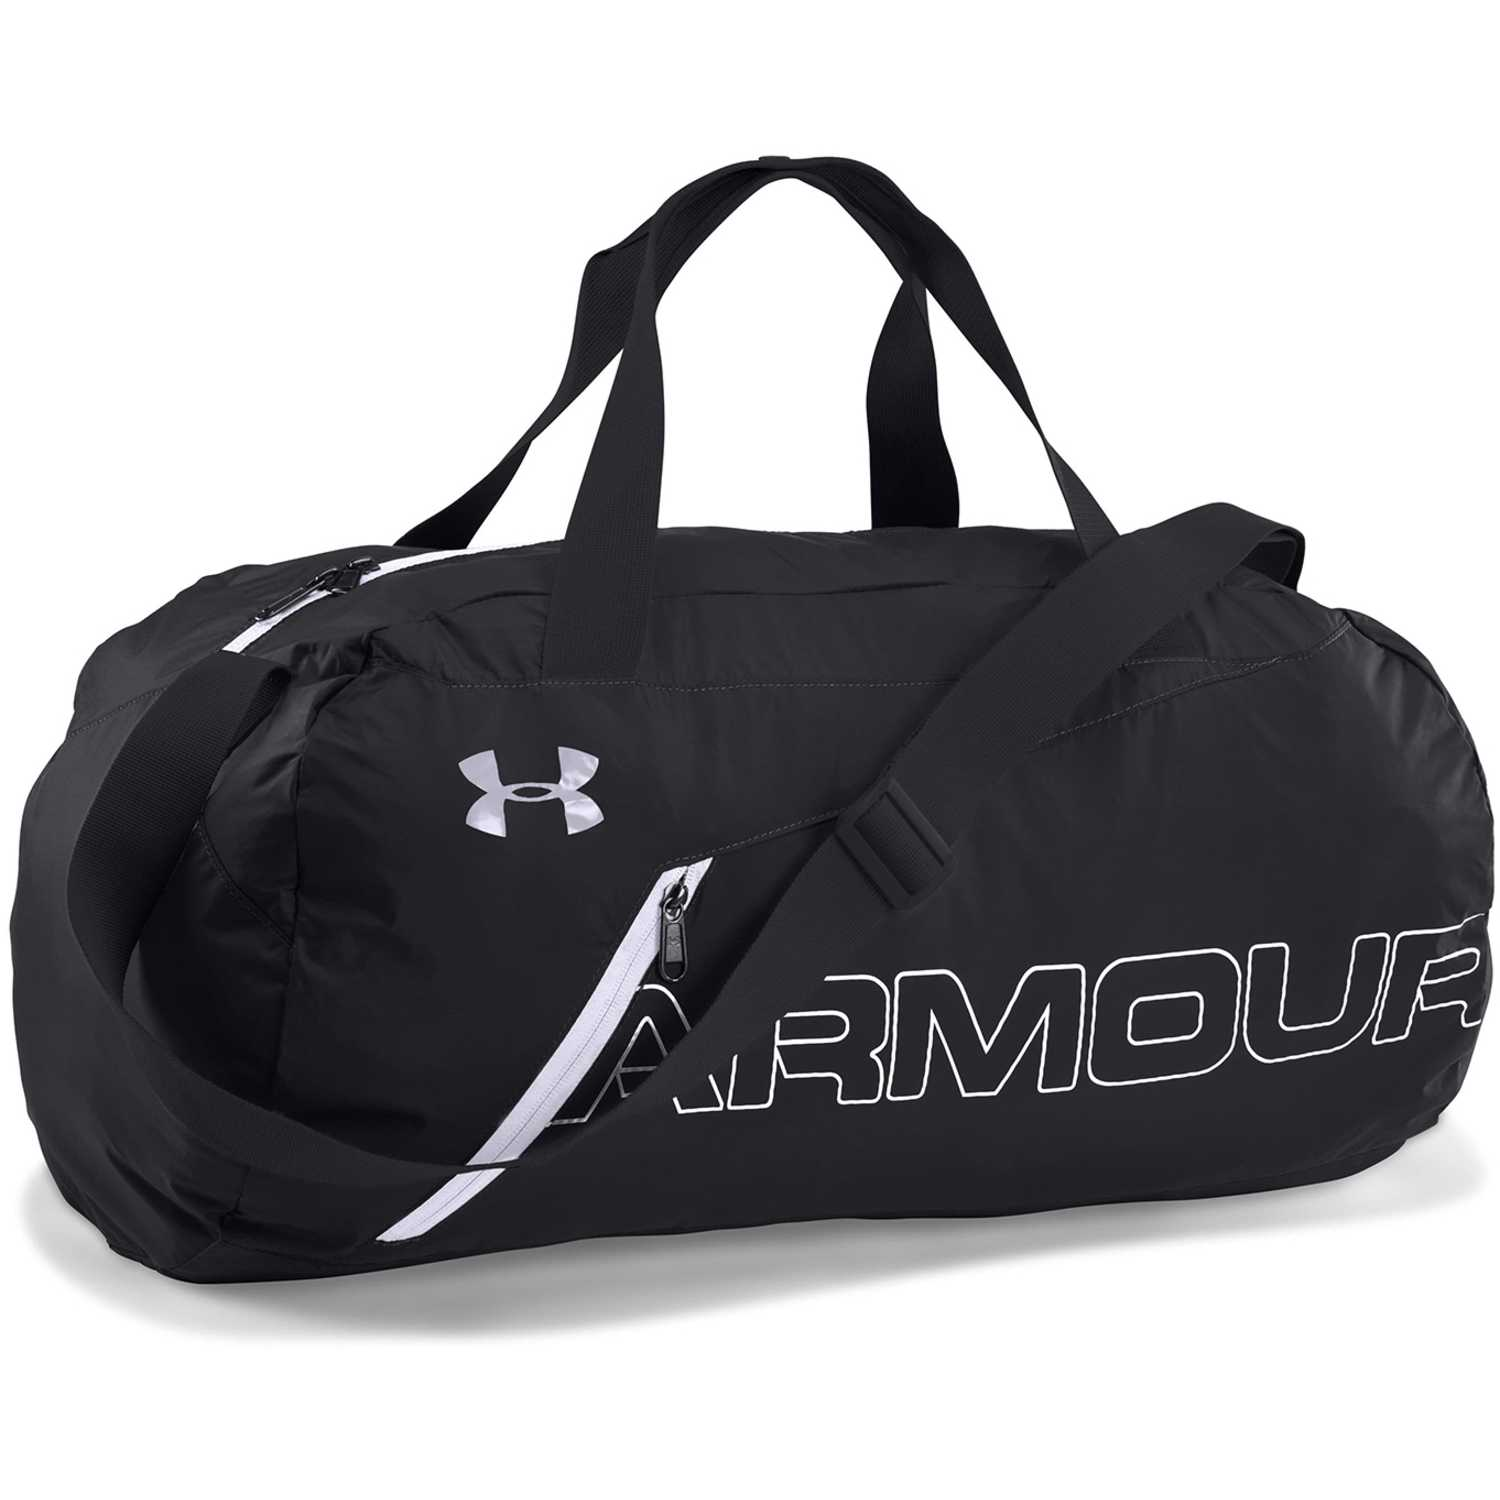 Deportivo de Mujer Under Armour Negro / blanco ua adaptable duffel